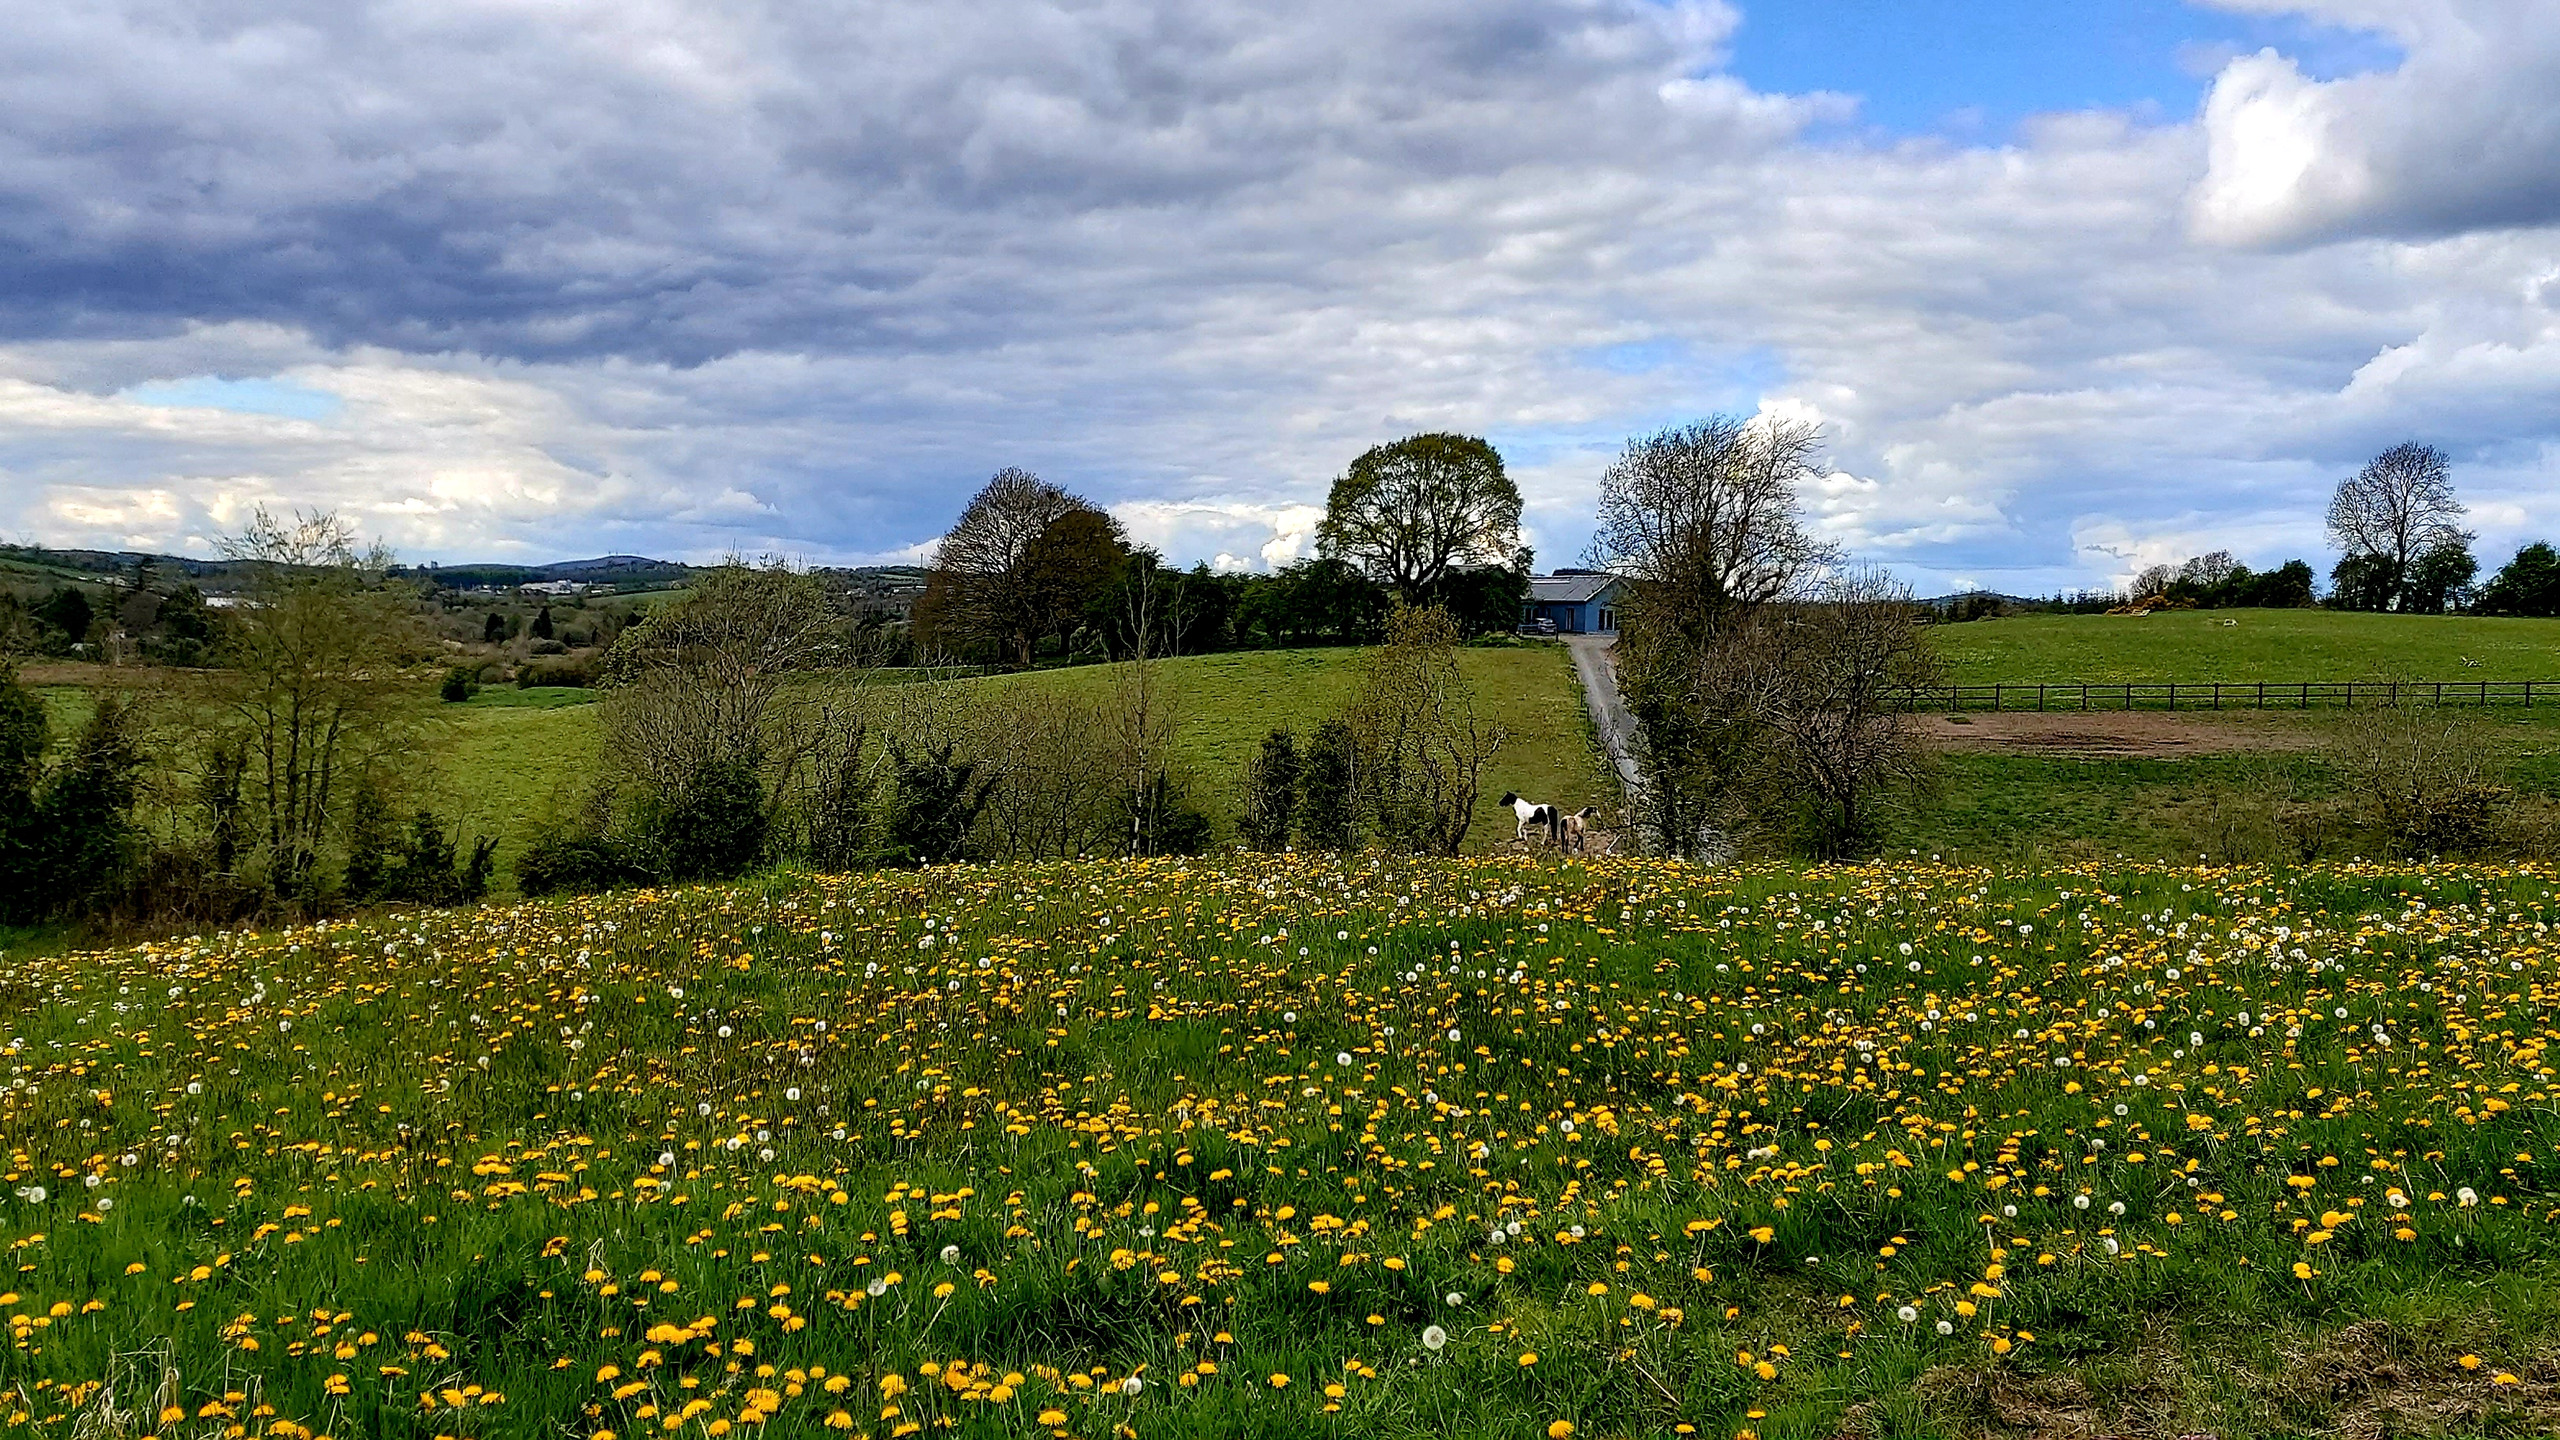 dandelion field and horses